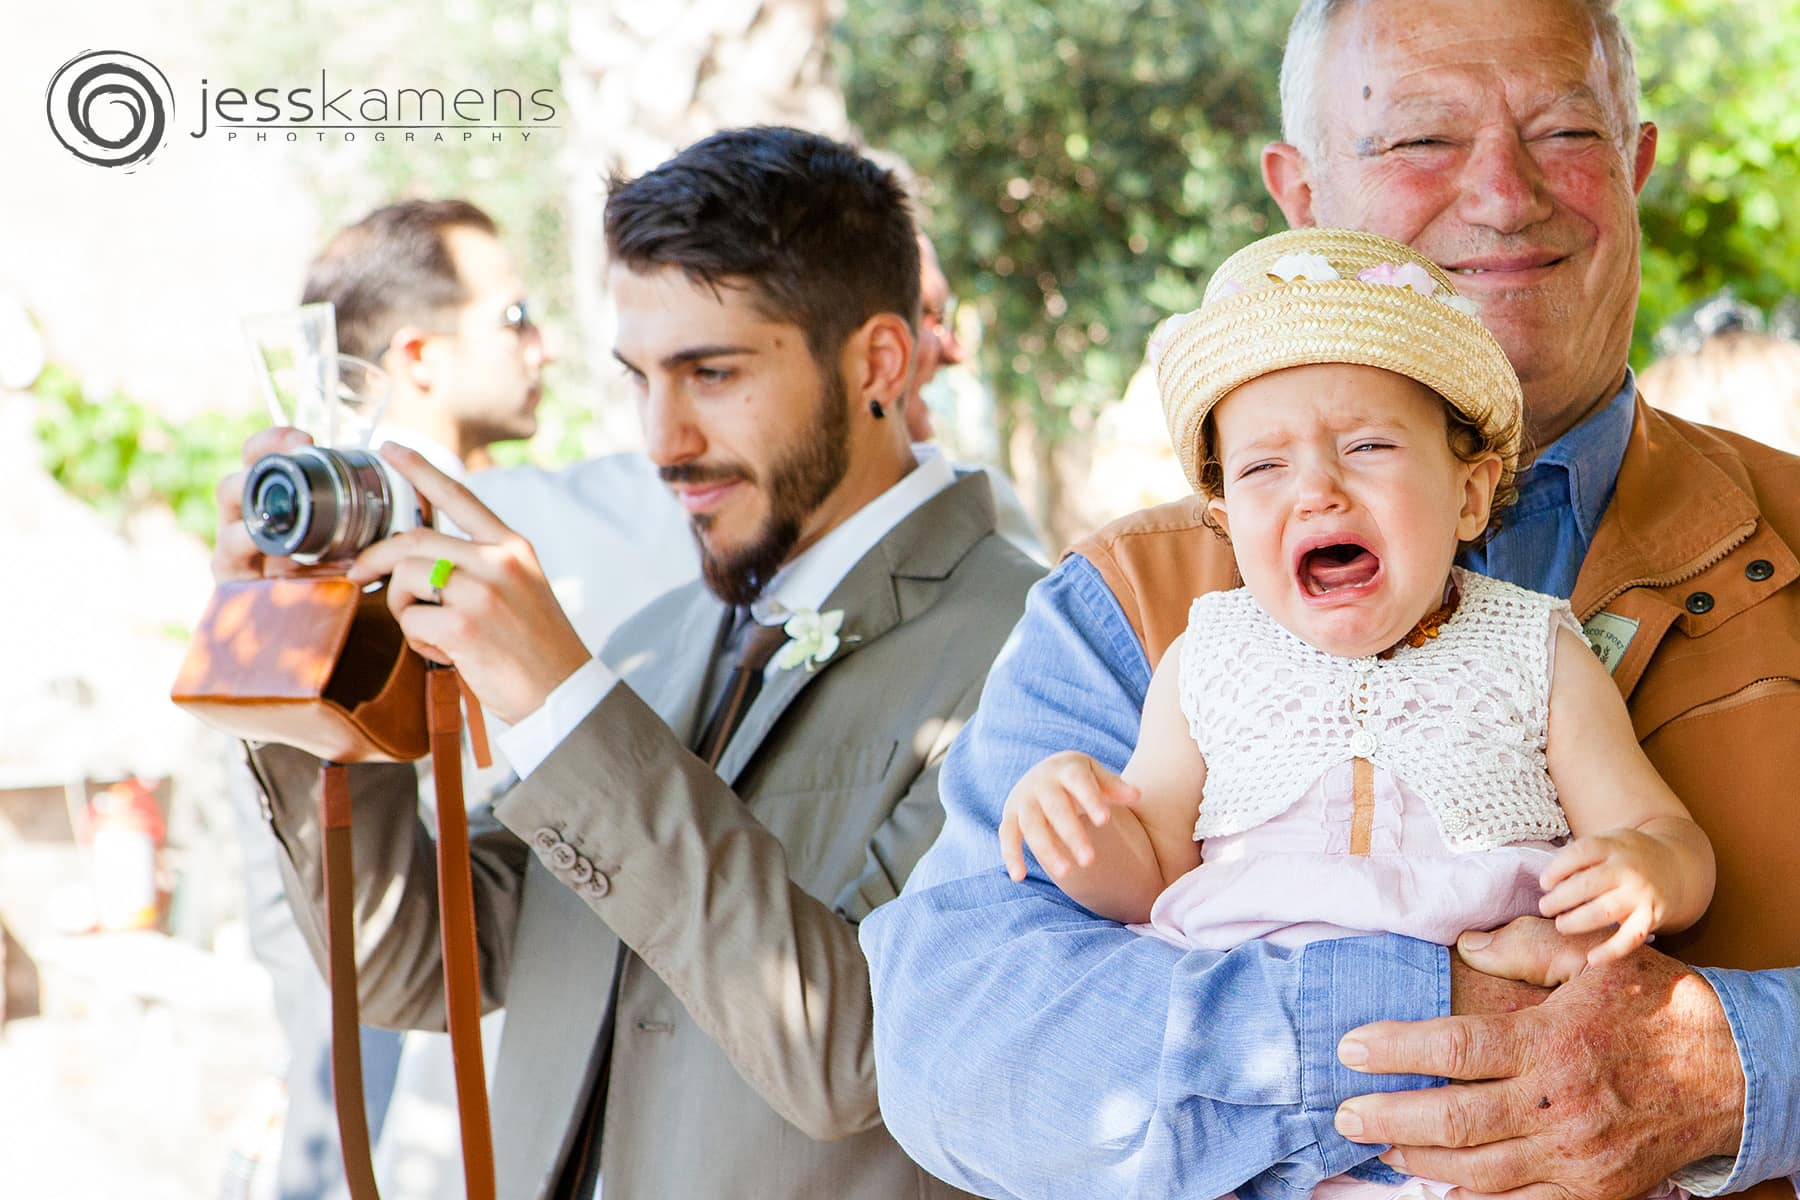 baby crying in his grandfather's arms and another person taking a picture in the background taken by a wedding photographer rochester